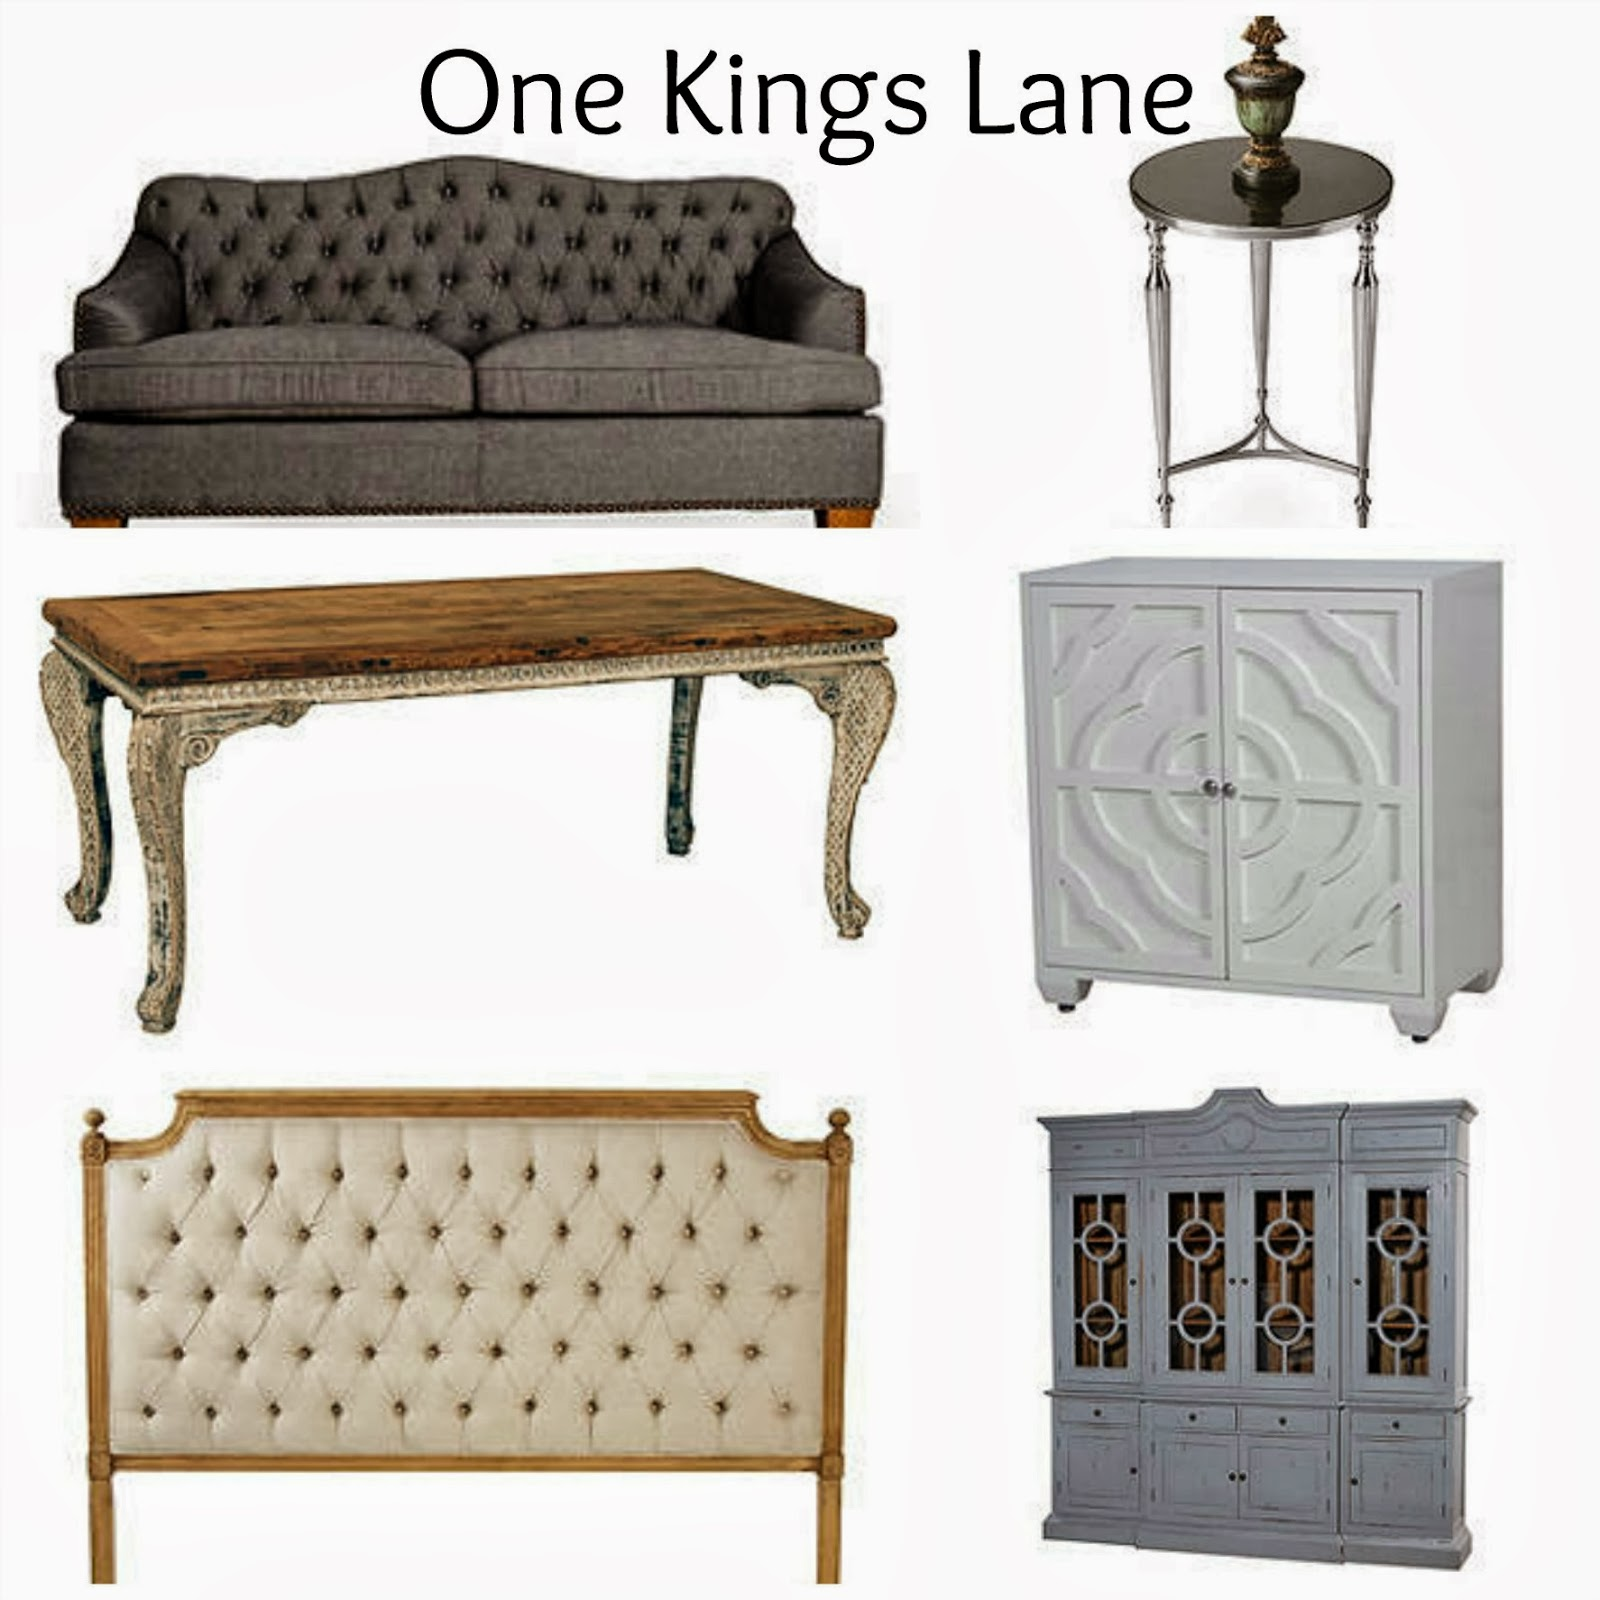 one kings lane chairs wheel chair lazada style decor and more furniture sale